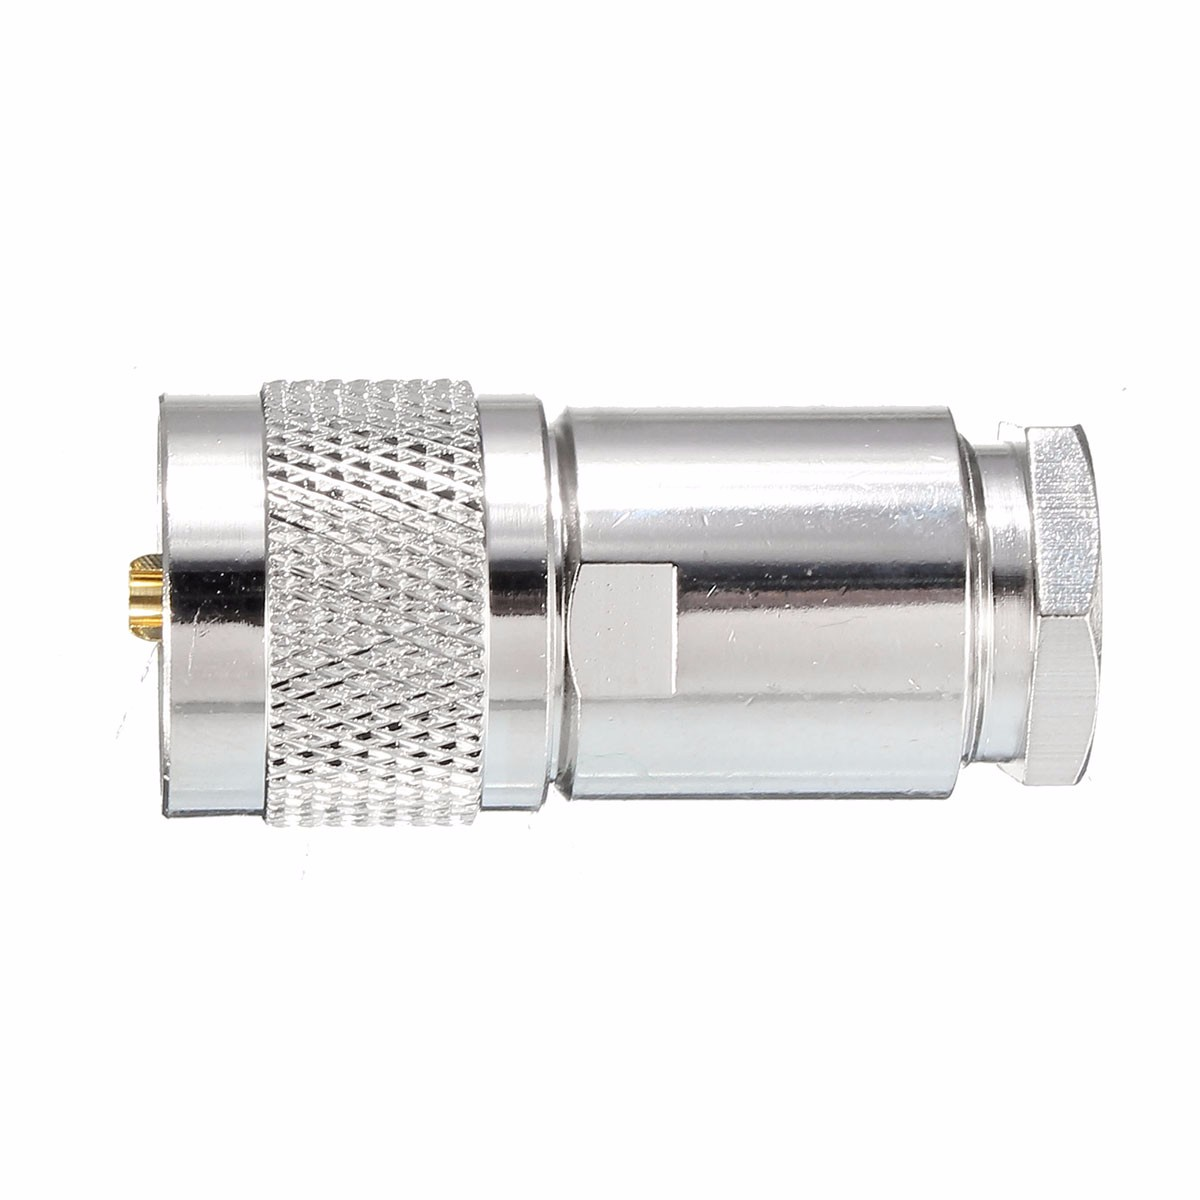 1Pc UHF Male PL259 Clamp Vers RG8 RG165 LMR400 Cable RF Connector Adapter